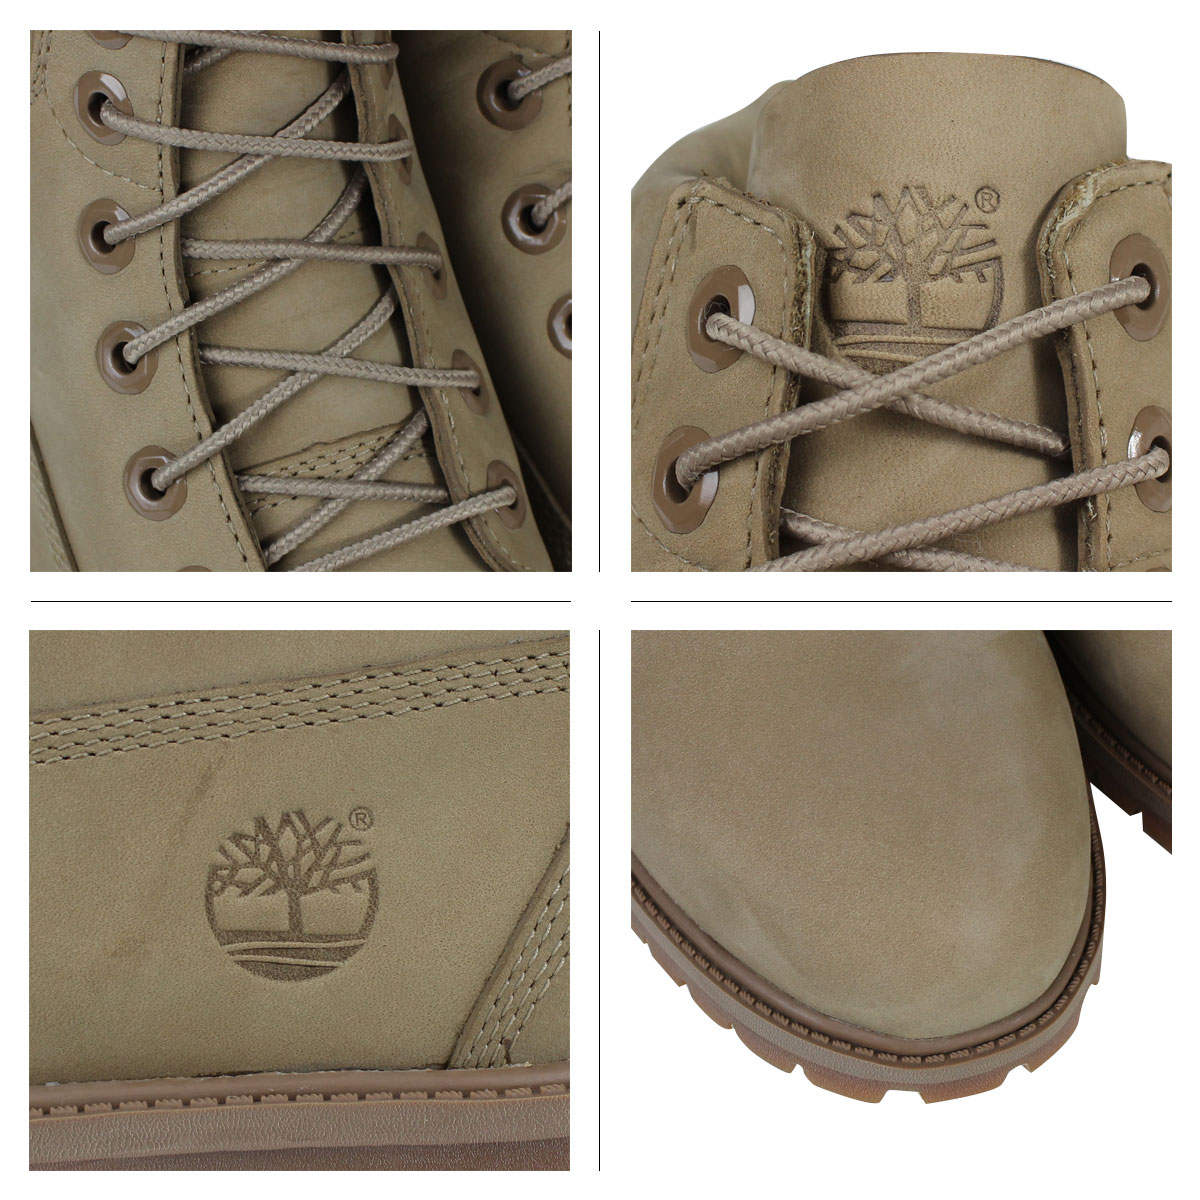 Timberland boots Womens Timberland 6INCHI 6 inch premium boots JUNIOR 6-INCH PREMIUM WATERPROOF BOOTS A173O W wise waterproof Brown [9/16 new in stock]